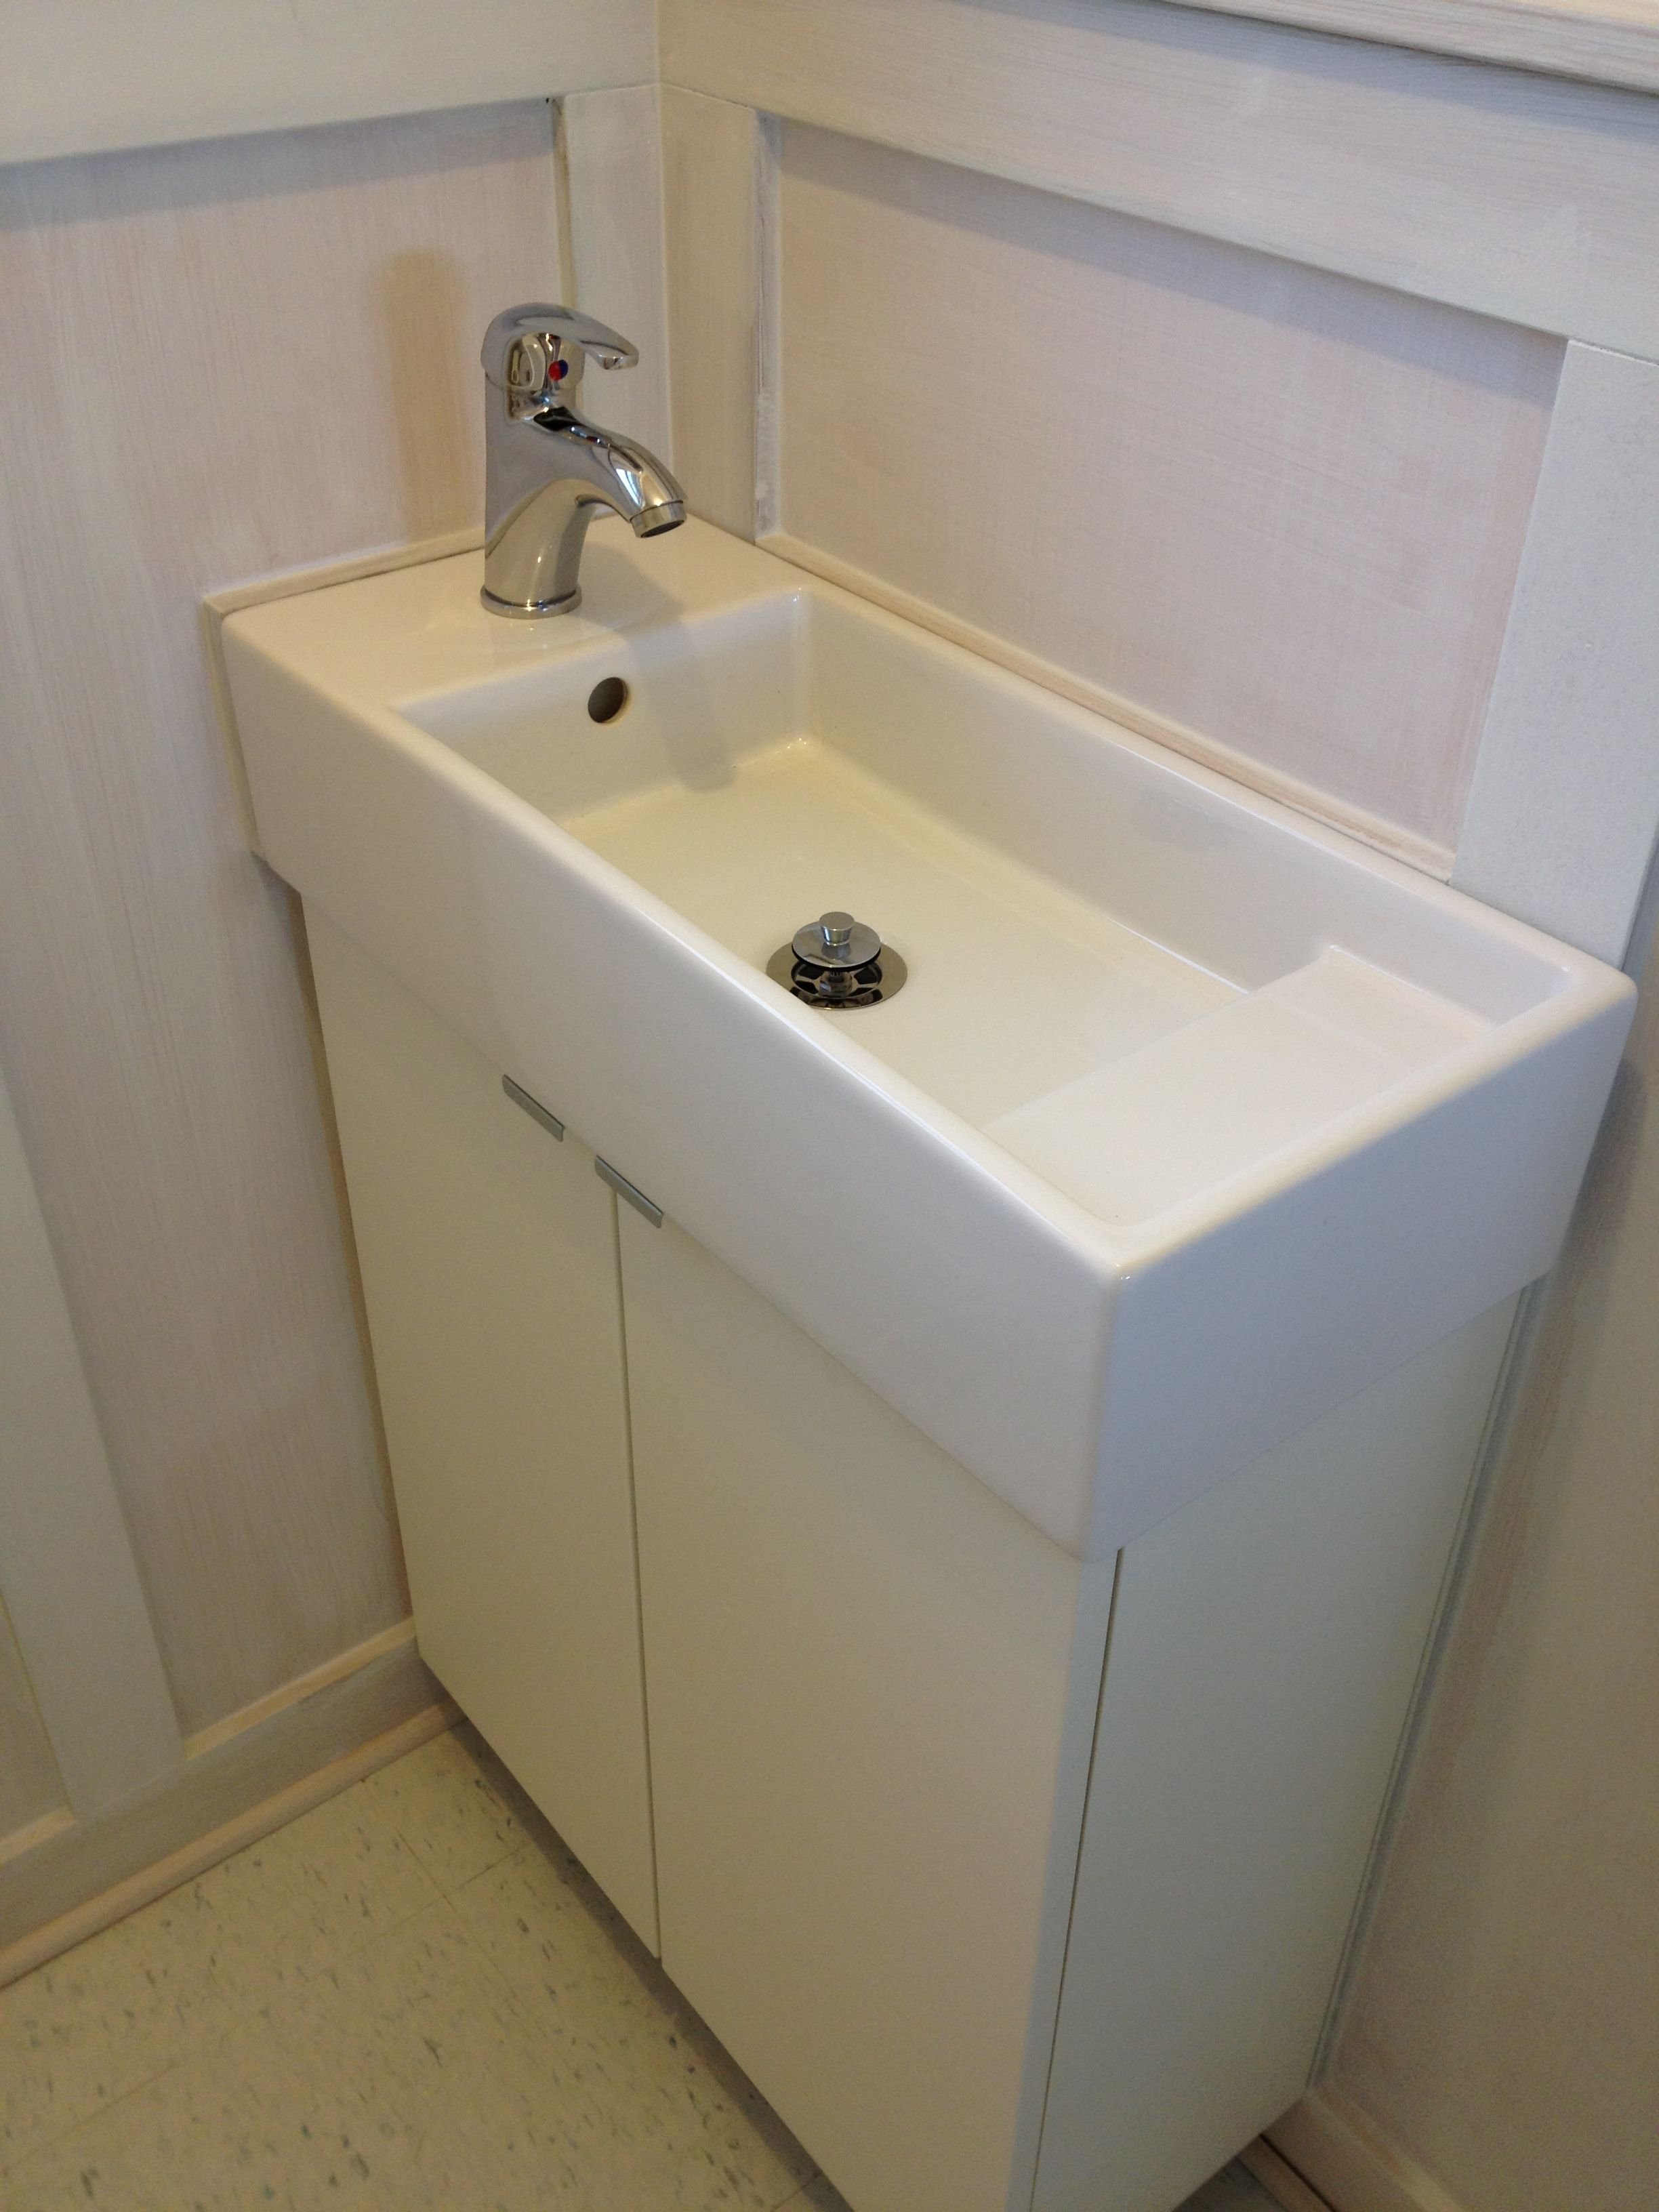 Sinks For Small Bathrooms Very Small Bathroom Sinks Rickevans